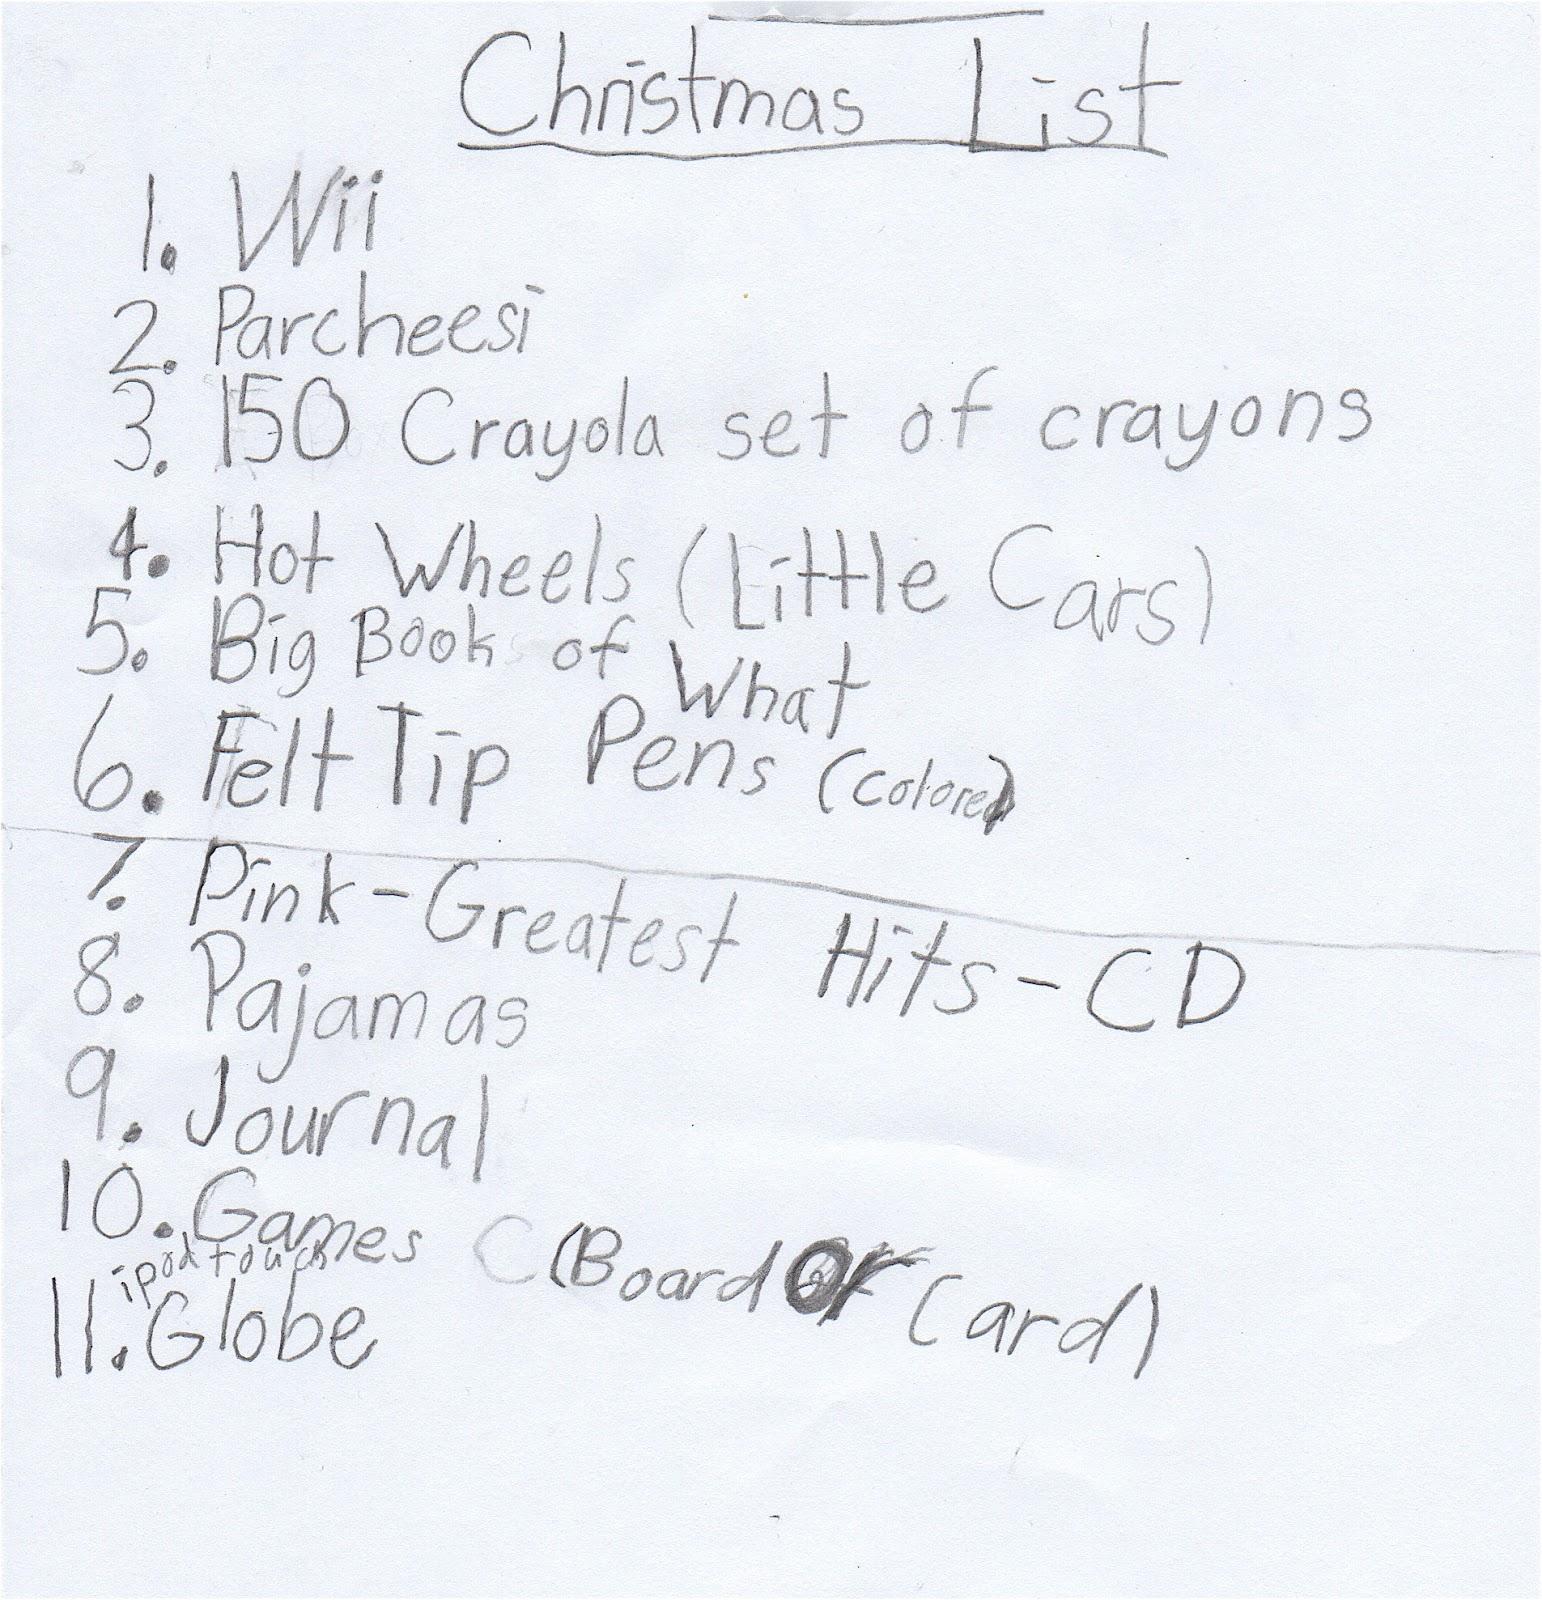 What Does A 10 Yr Old Girl Want For Christmas